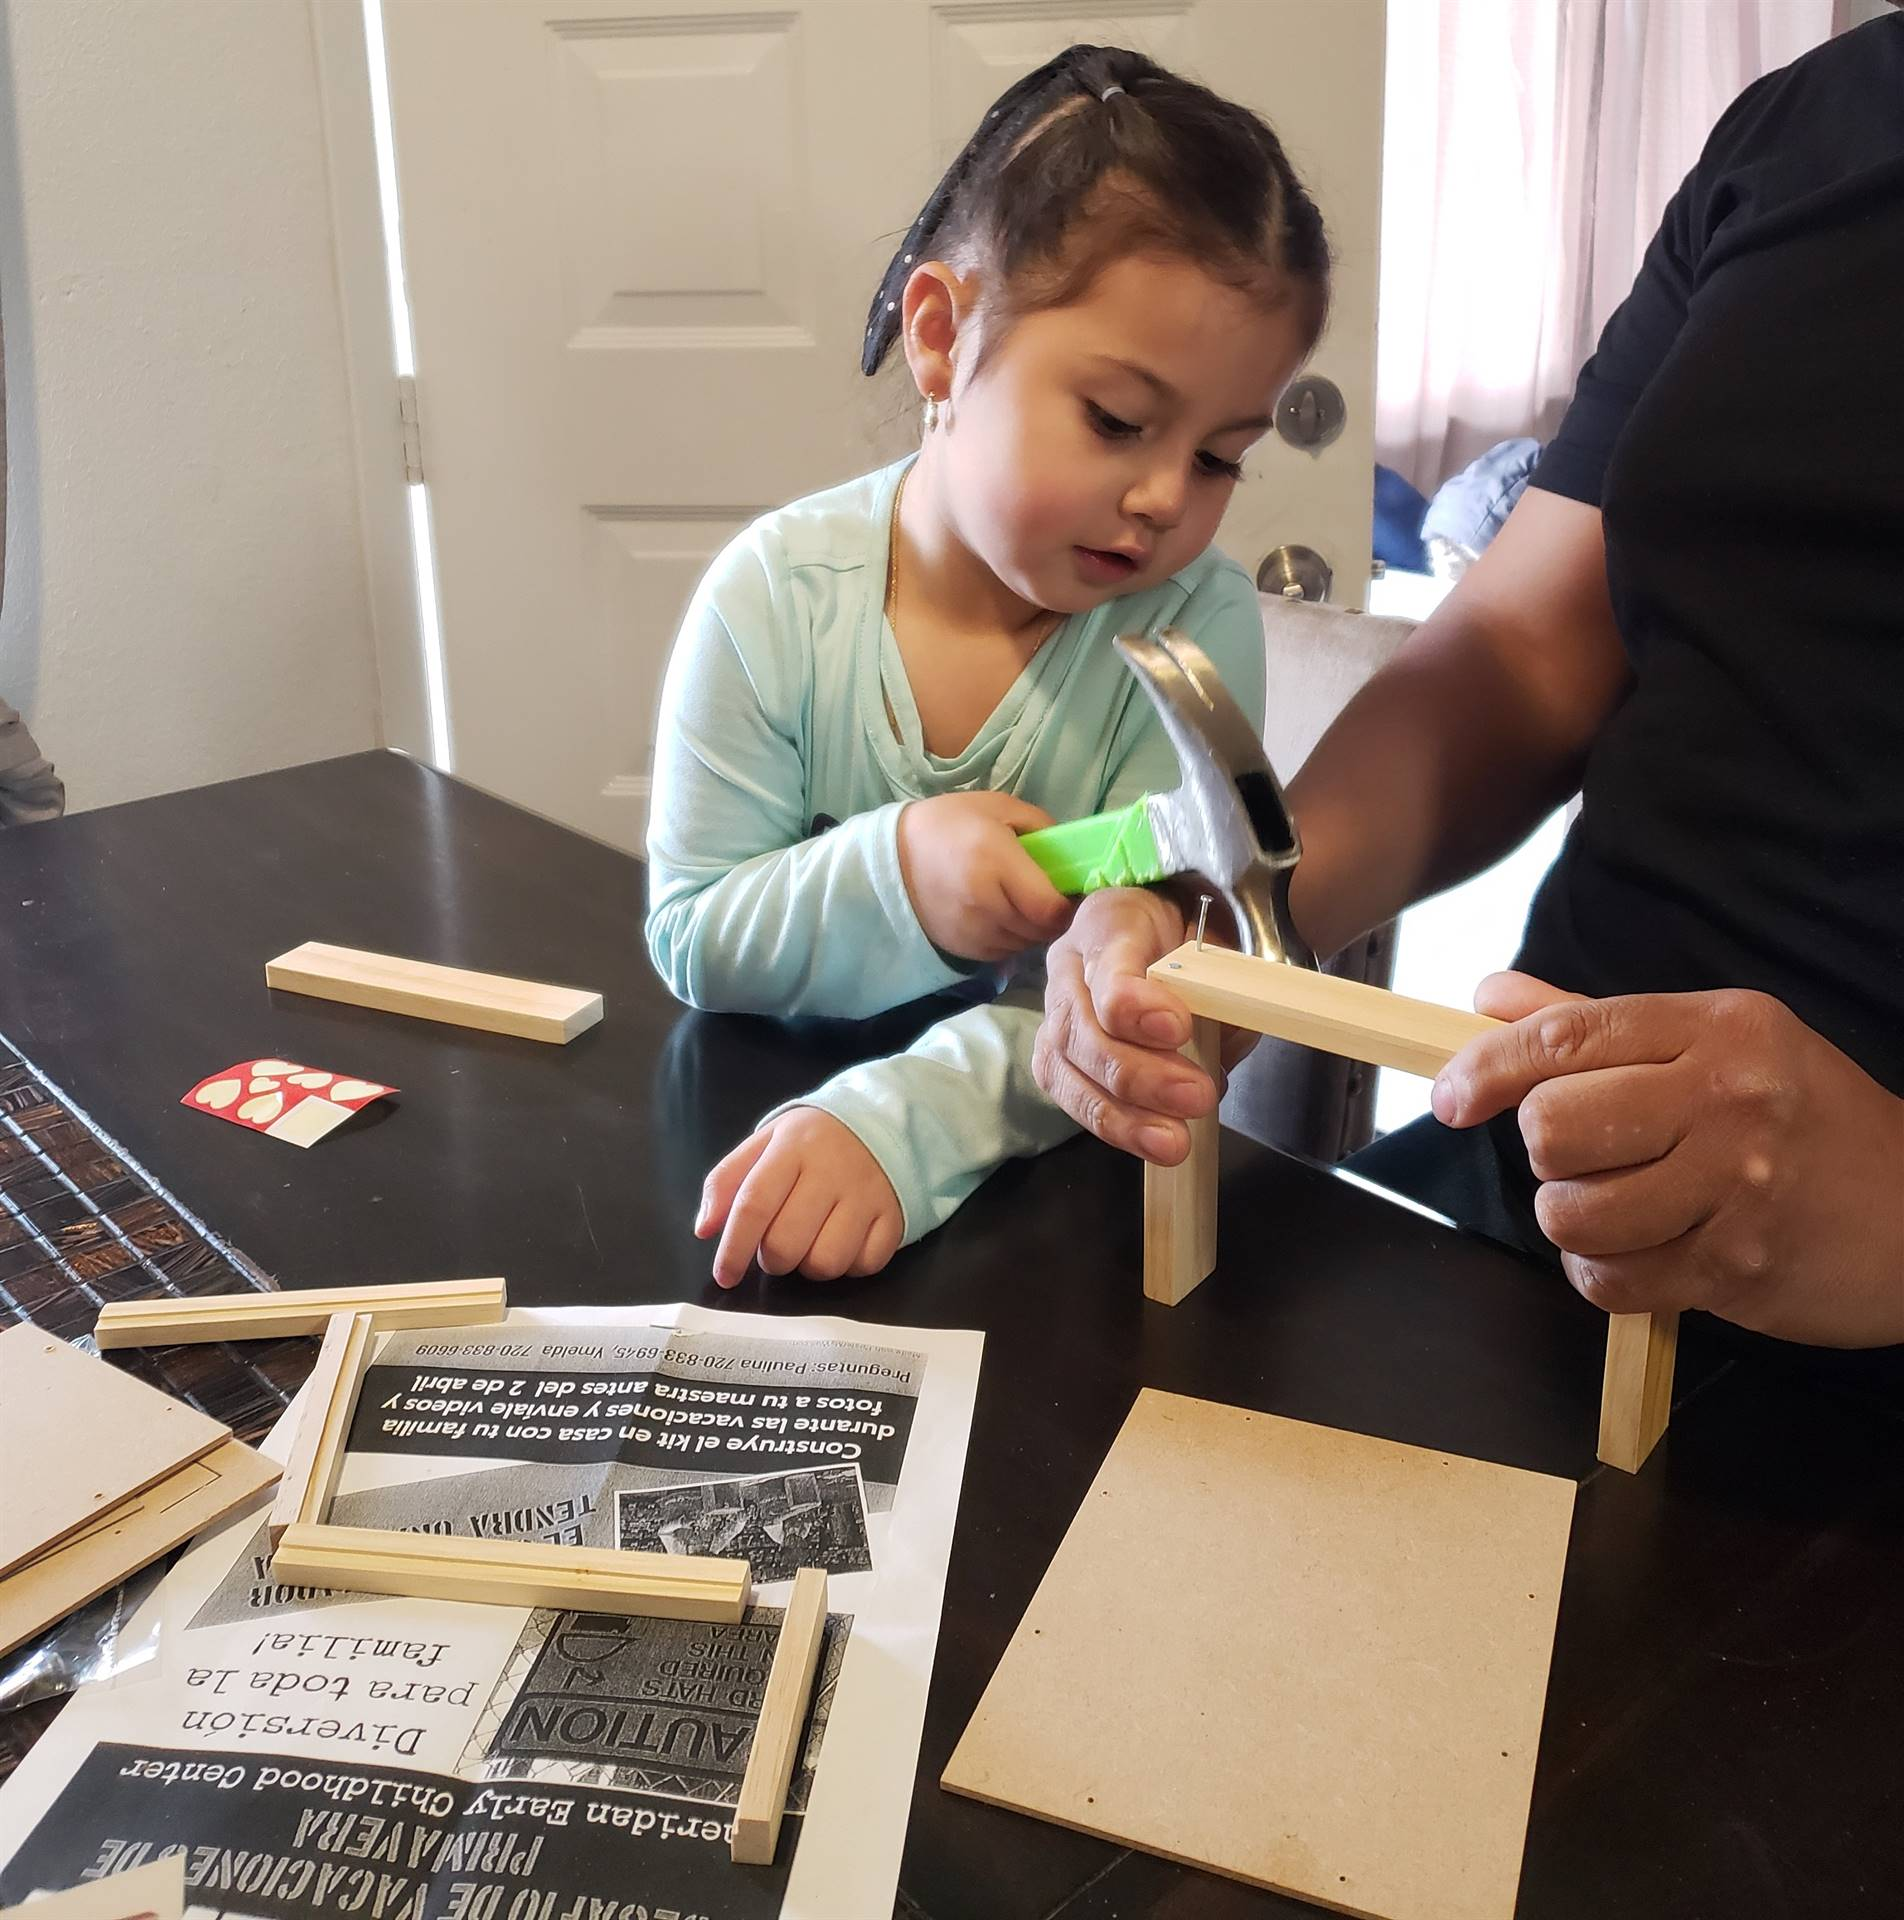 A little girl works with her Dad to carefully hammer together the picture frame from her Home Depot.